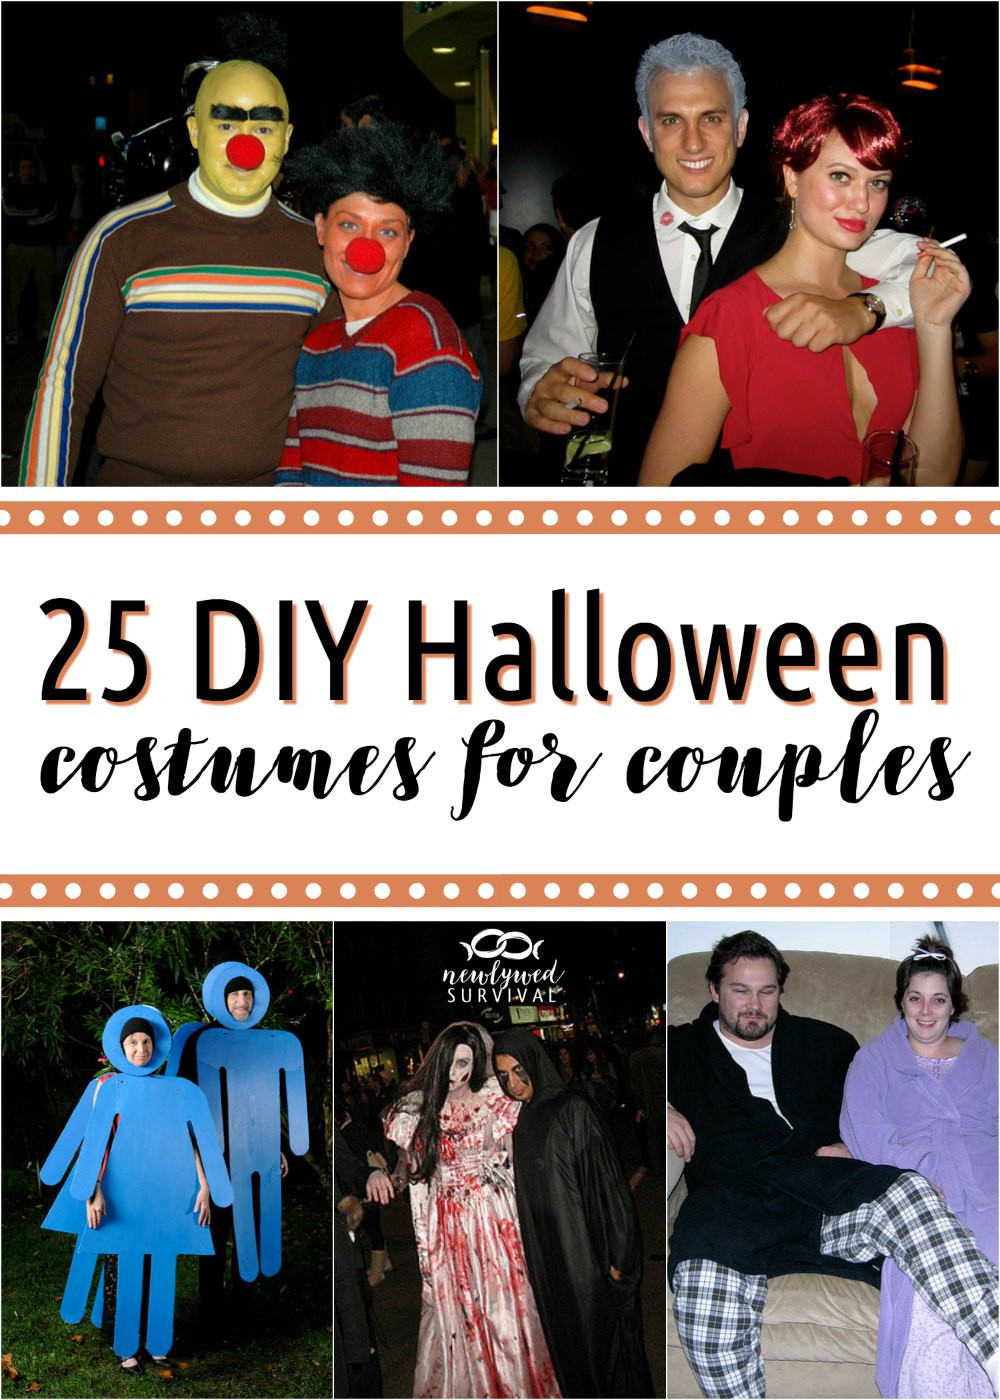 Couples Costumes DIY  25 DIY Costumes for Couples Newlywed Survival